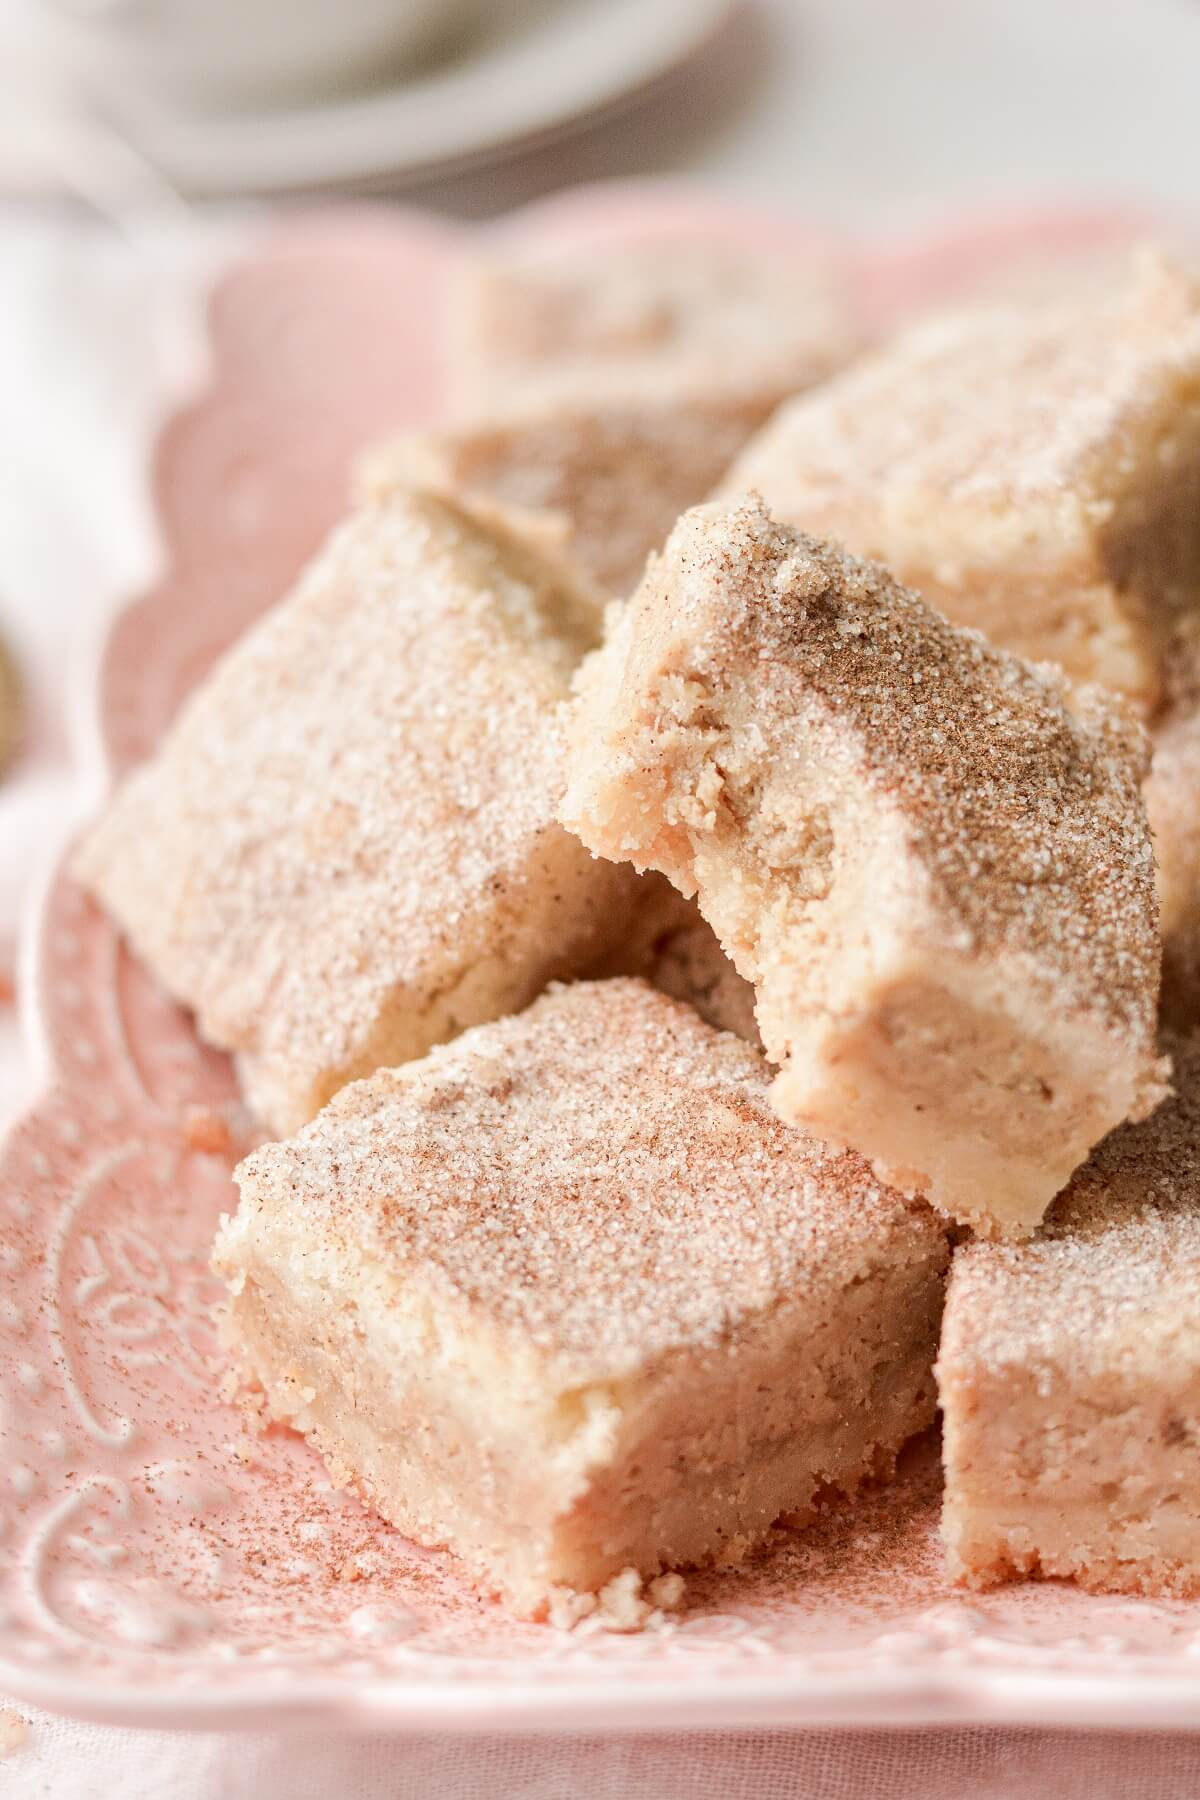 Snickerdoodle cheesecake shortbread bars, one with a bite taken, arranged on a pink plate.